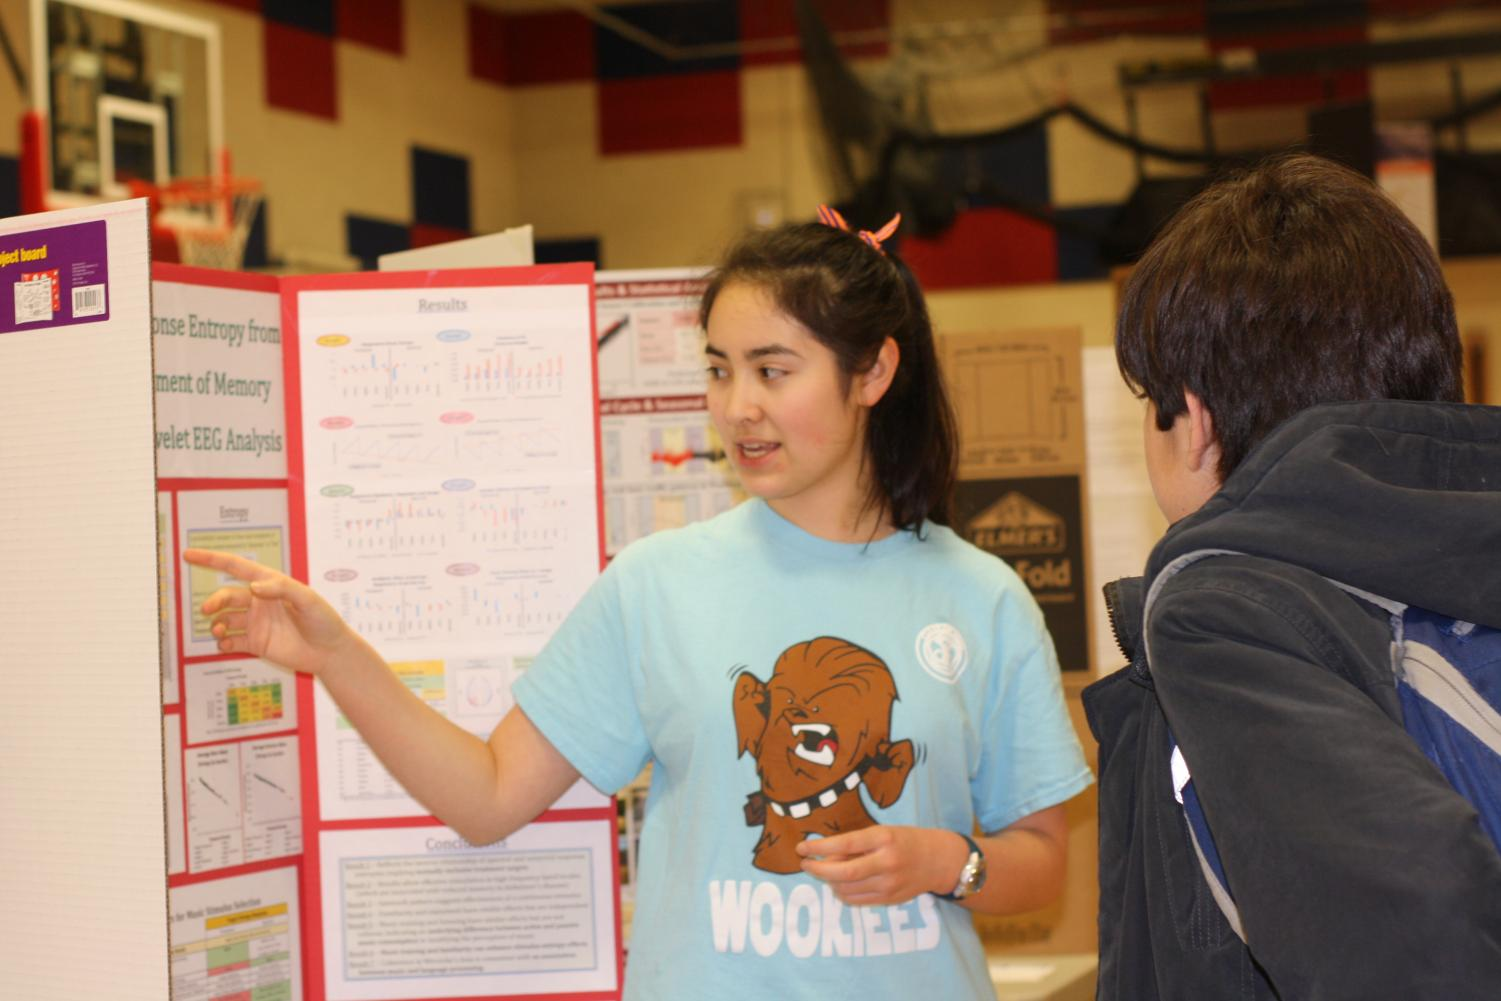 A+competitor+presents+her+project+to+visitors+of+the+Science+Fair.